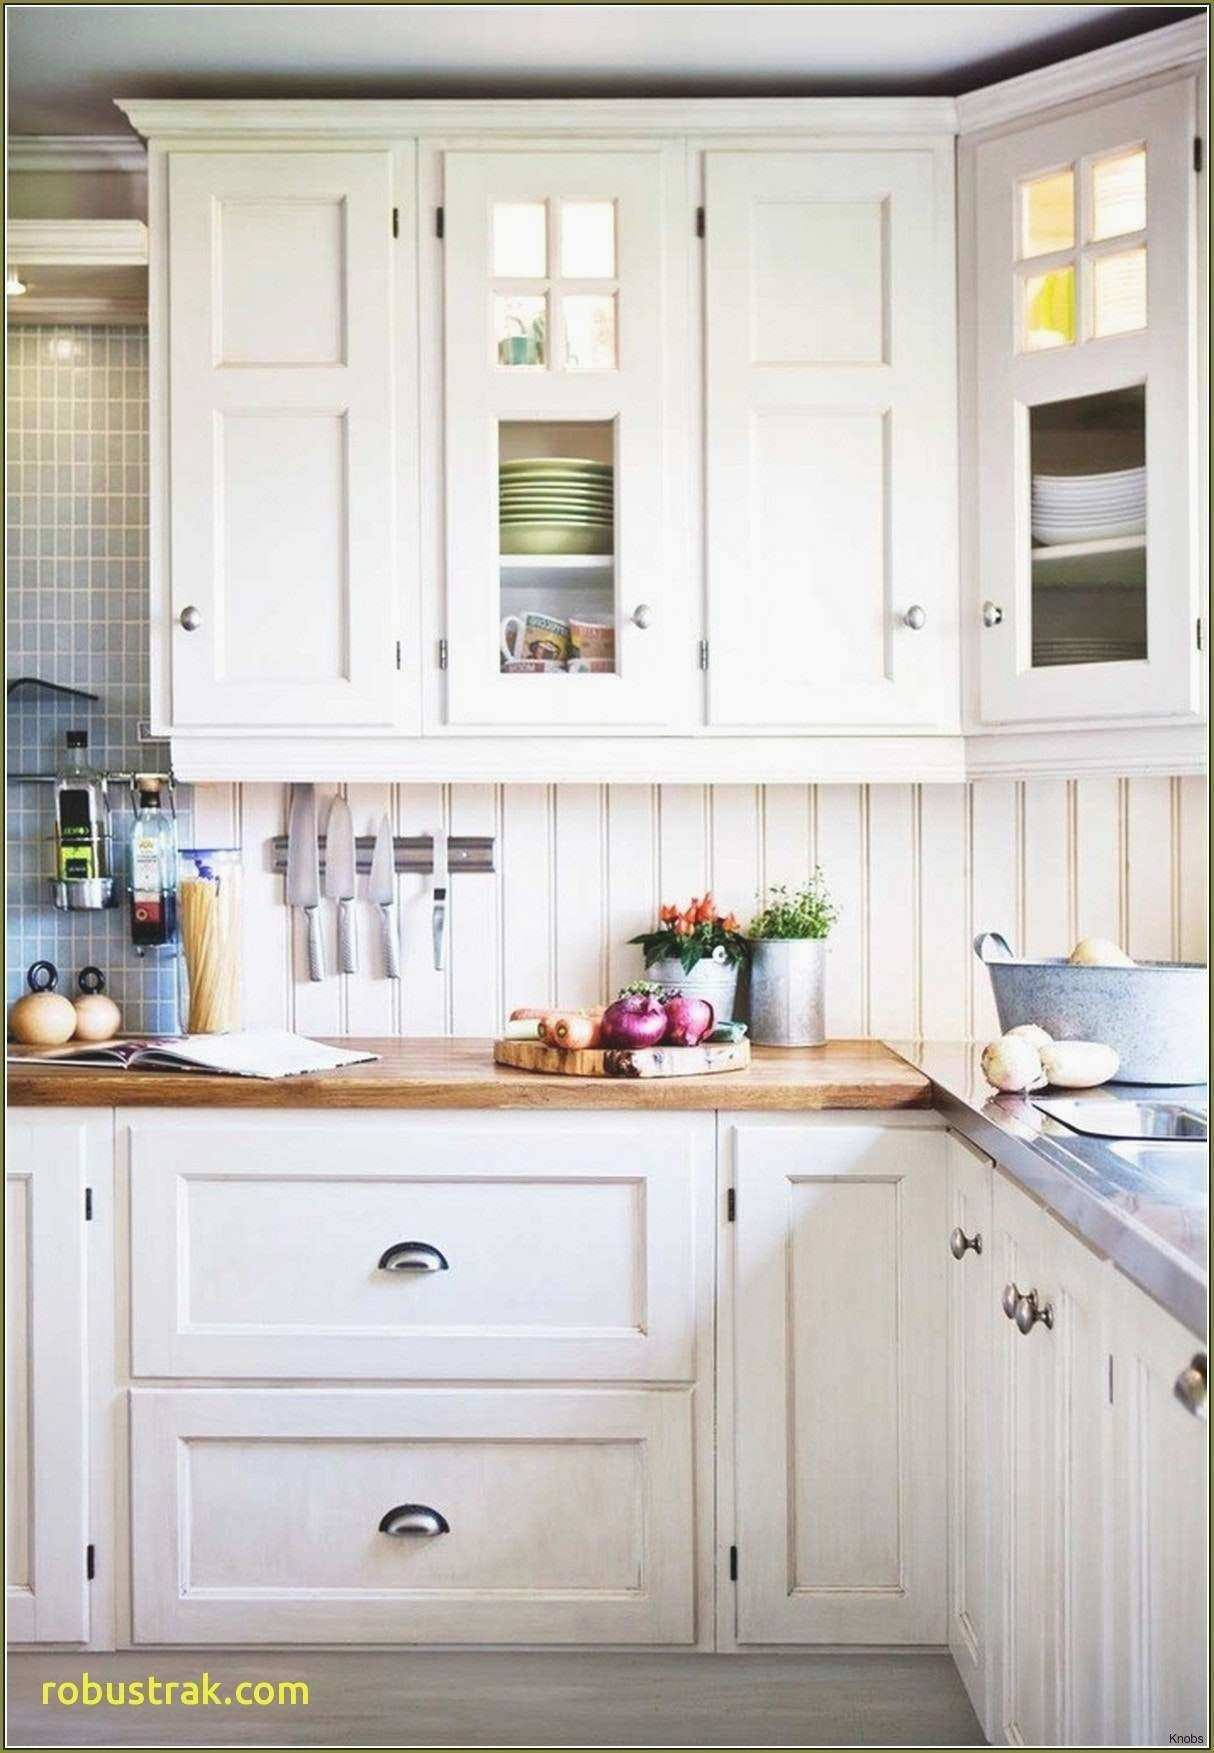 34 Elegant Hardware for Kitchen Cabinets and Drawers Gallery